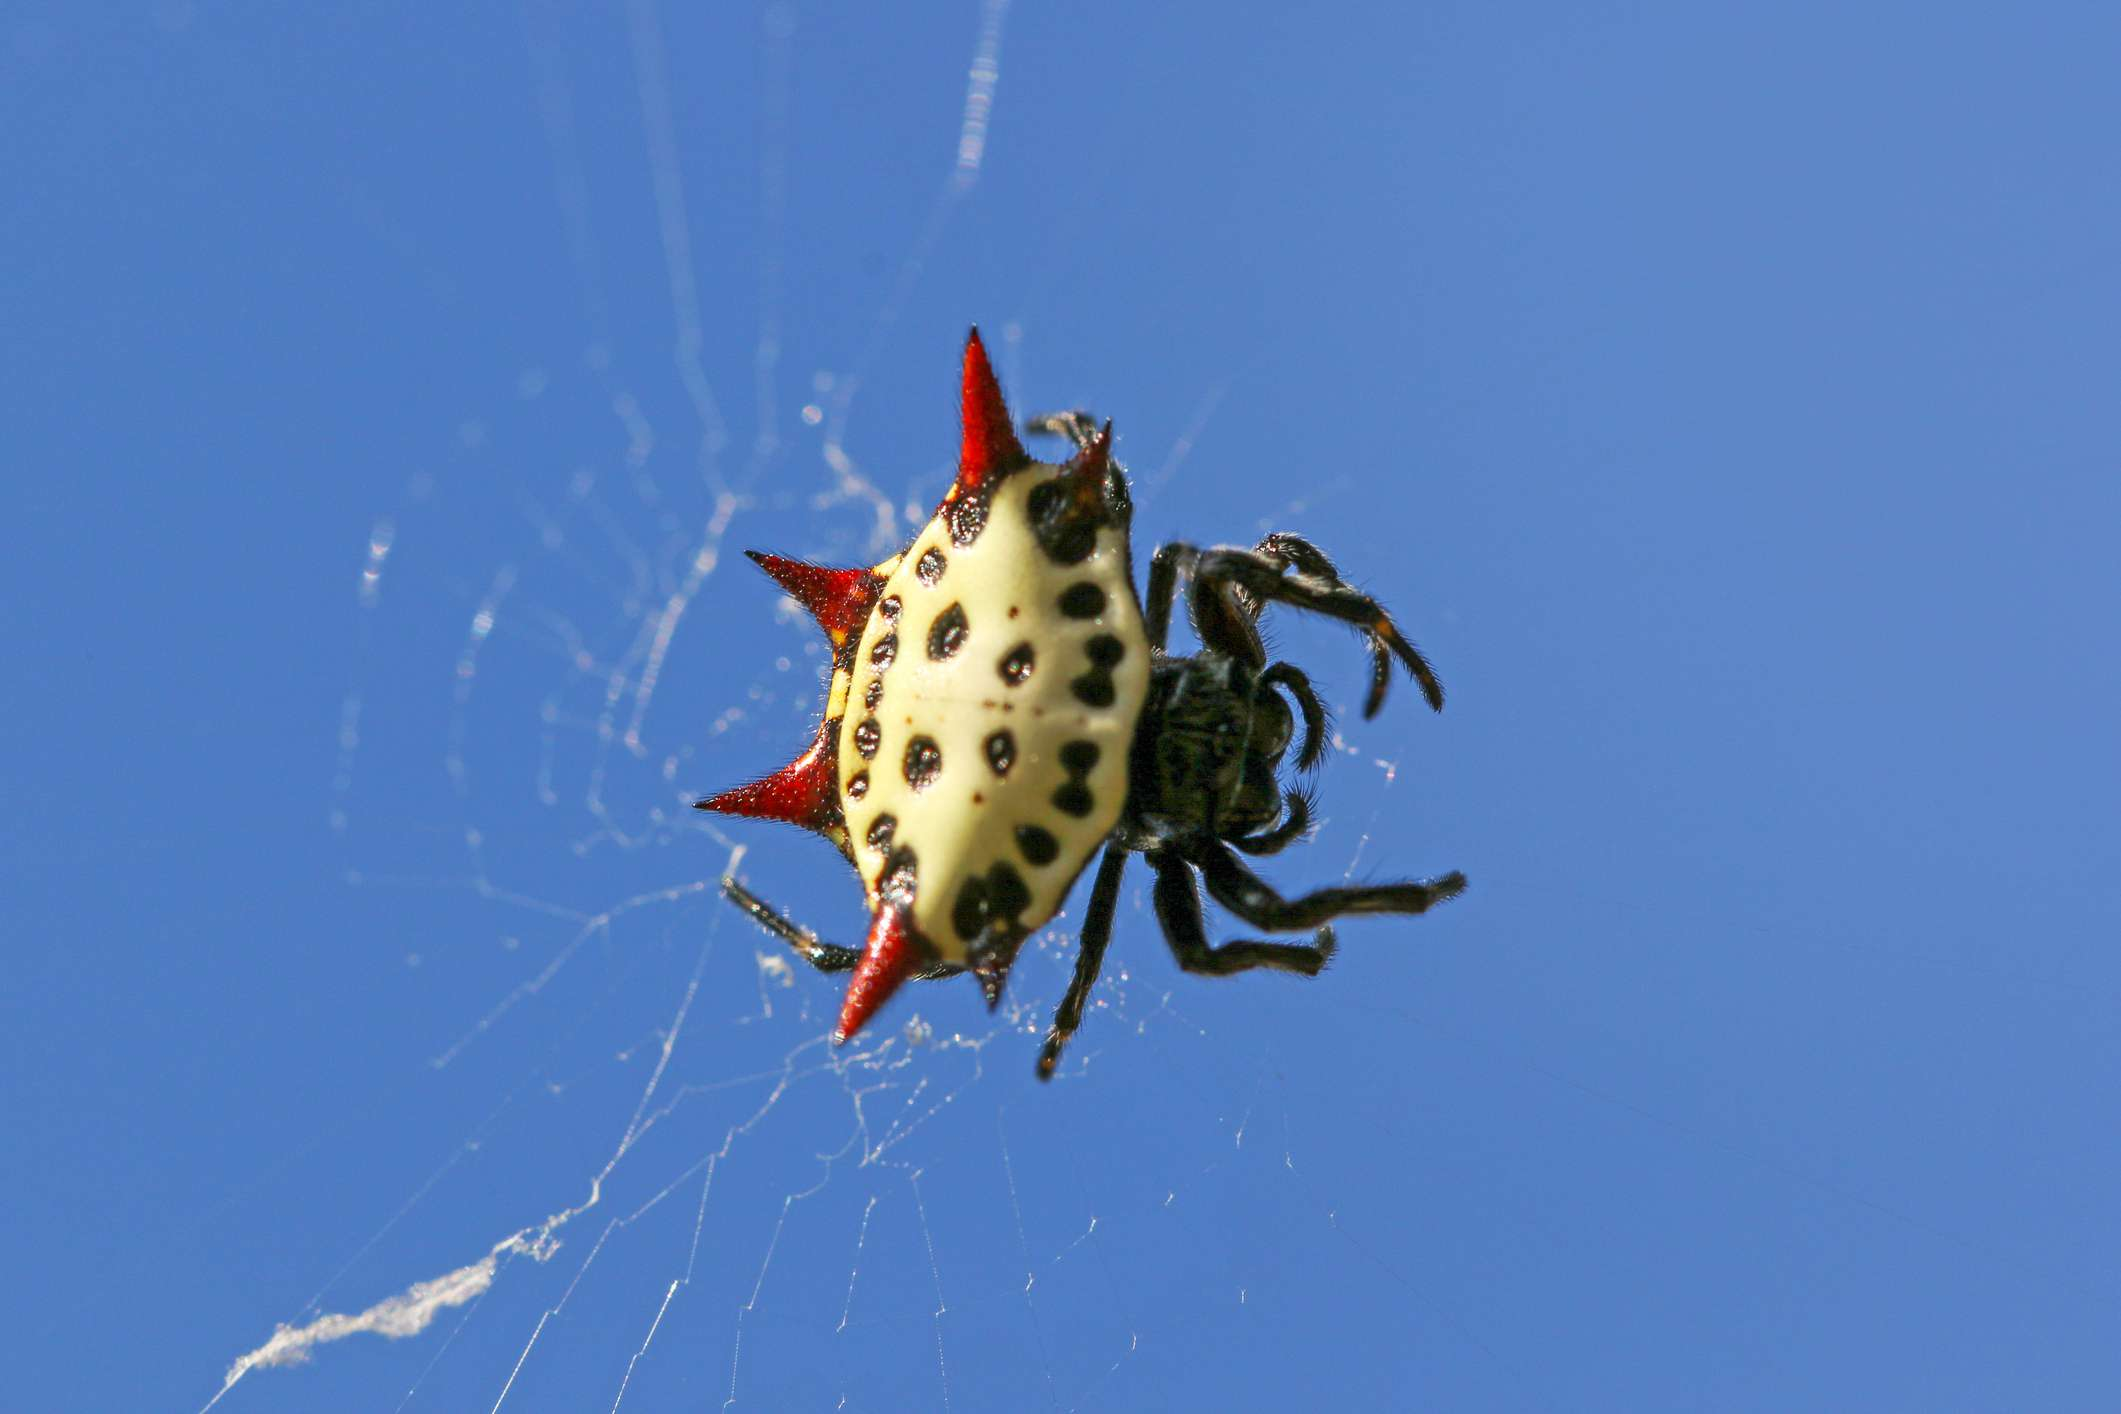 Close up of a spiny-orb spider in a web with four red points sticking up from its abdomen, markings on its abdomen that resemble a face, and black legs in front of a bright blue sky